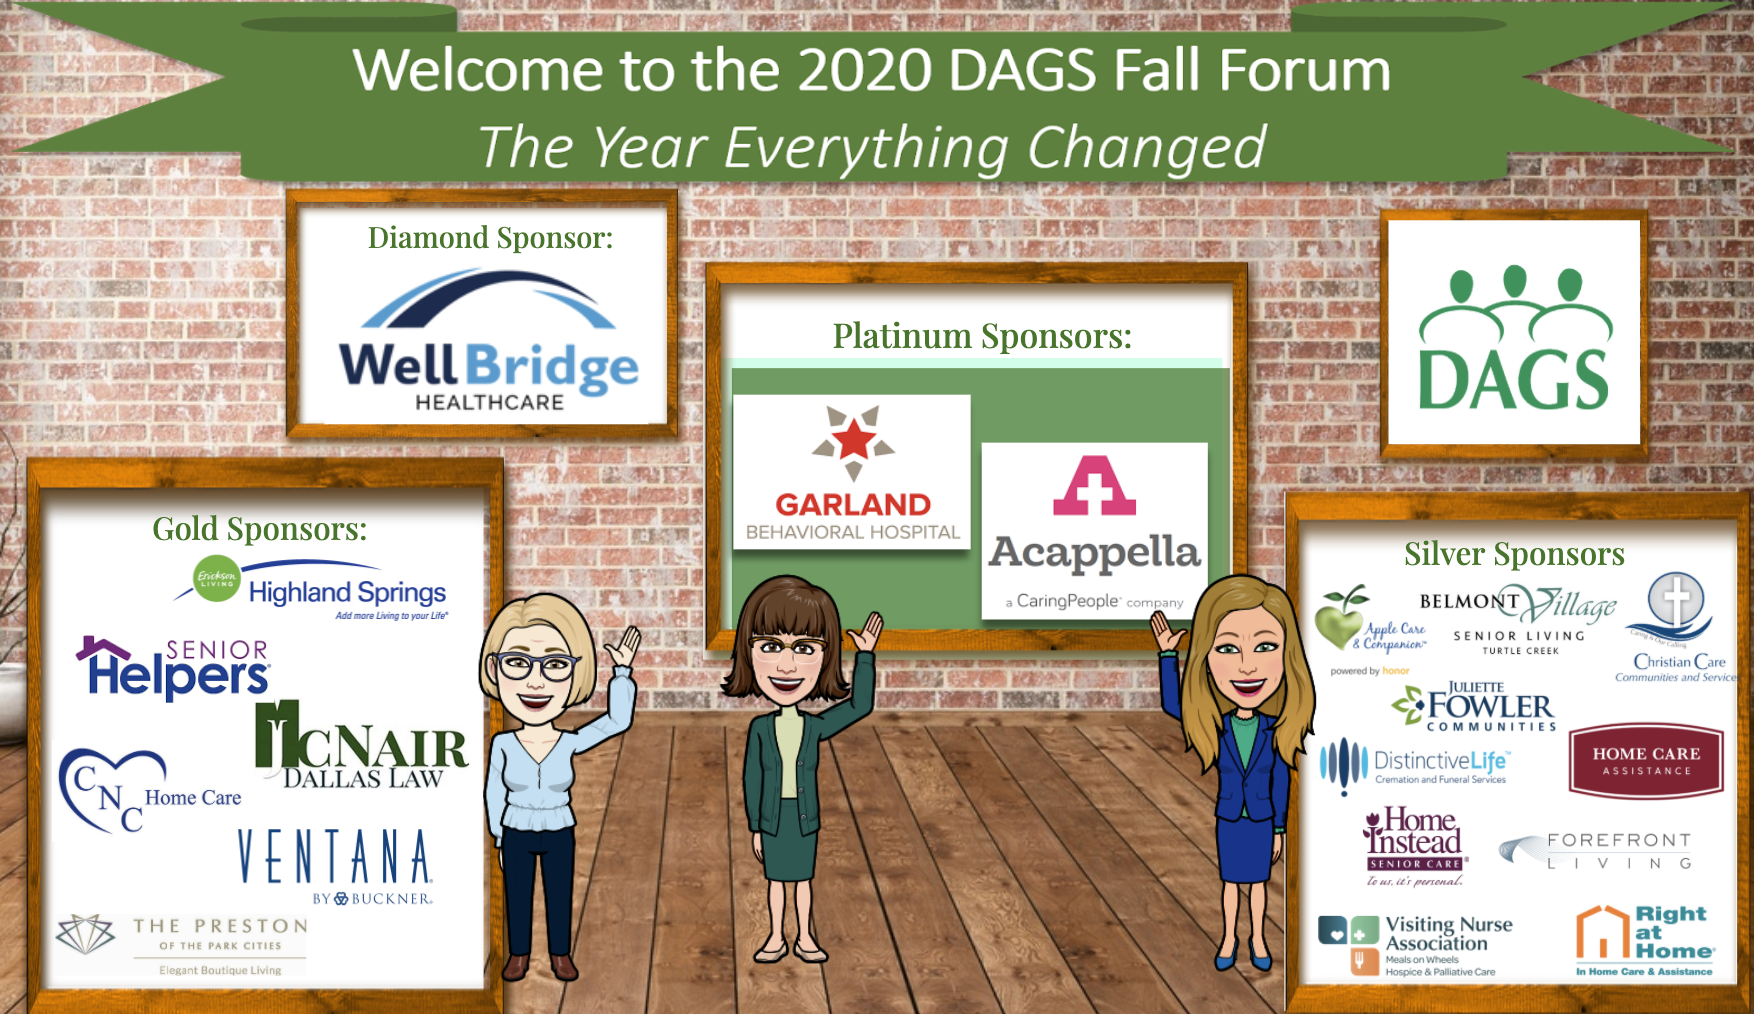 DAGS 2020 Fall Forum